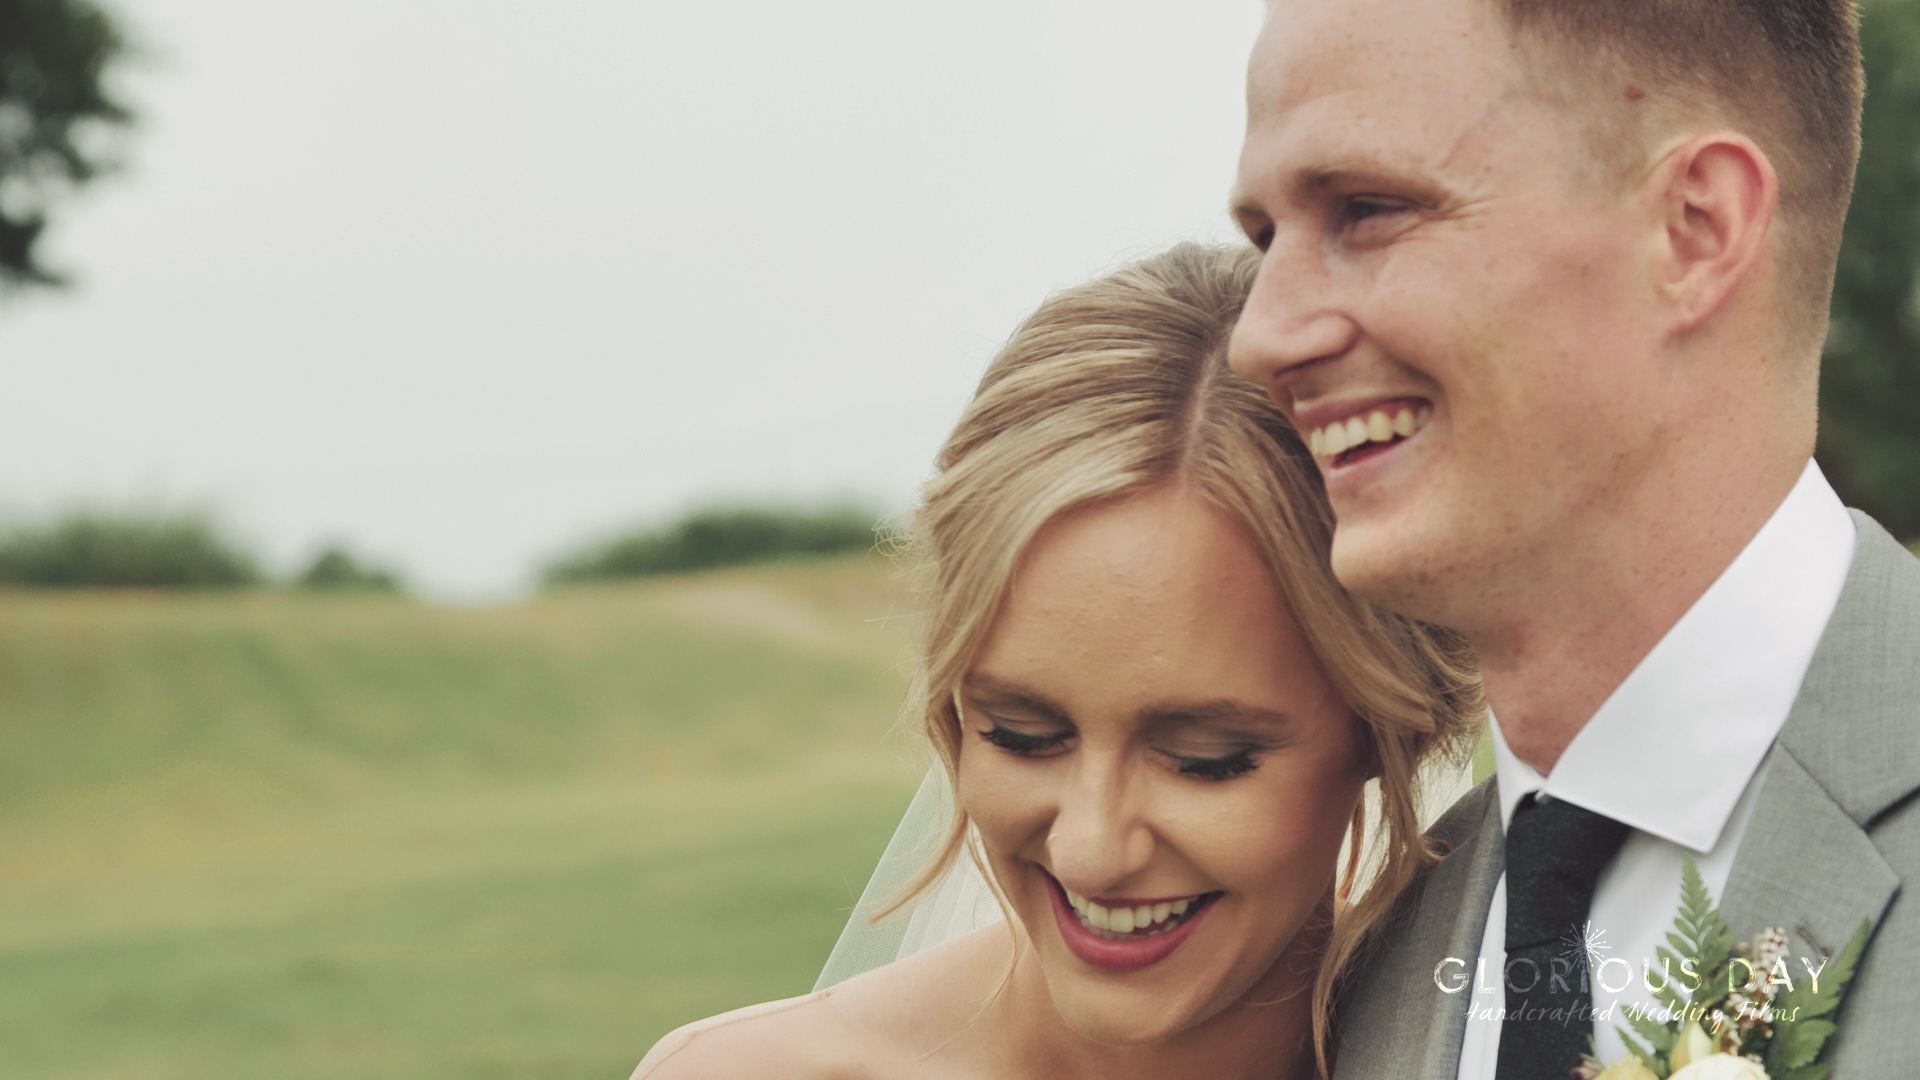 Lindy + Danny | Oklahoma City, Oklahoma | The Baumberhof